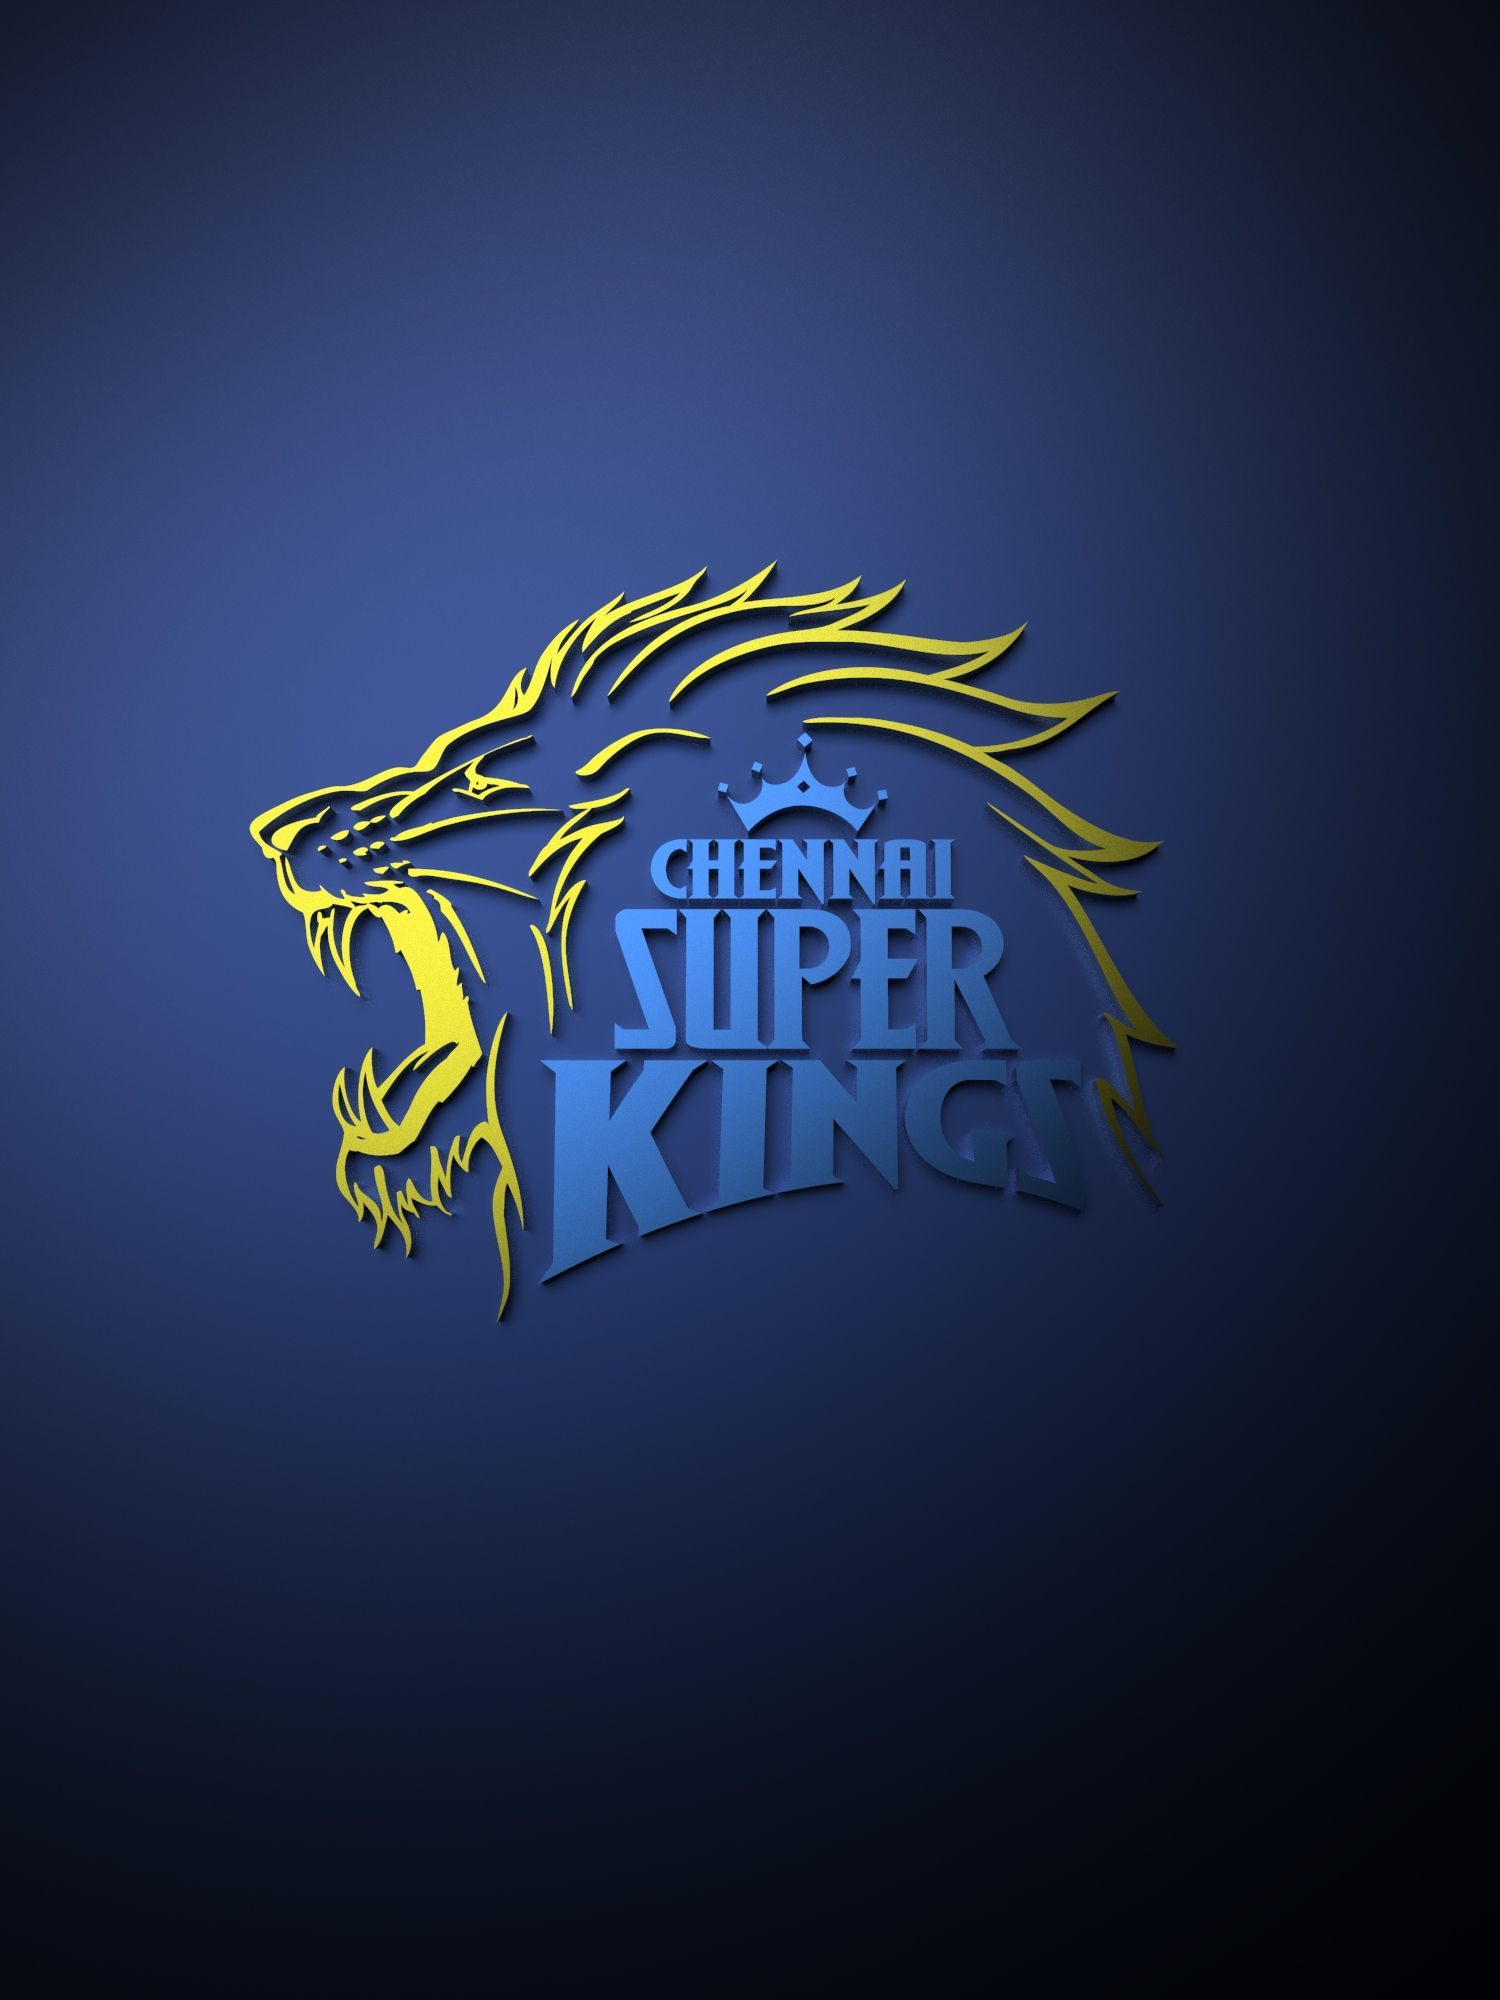 Chennai Super Kings IPL metallic logo poster painting